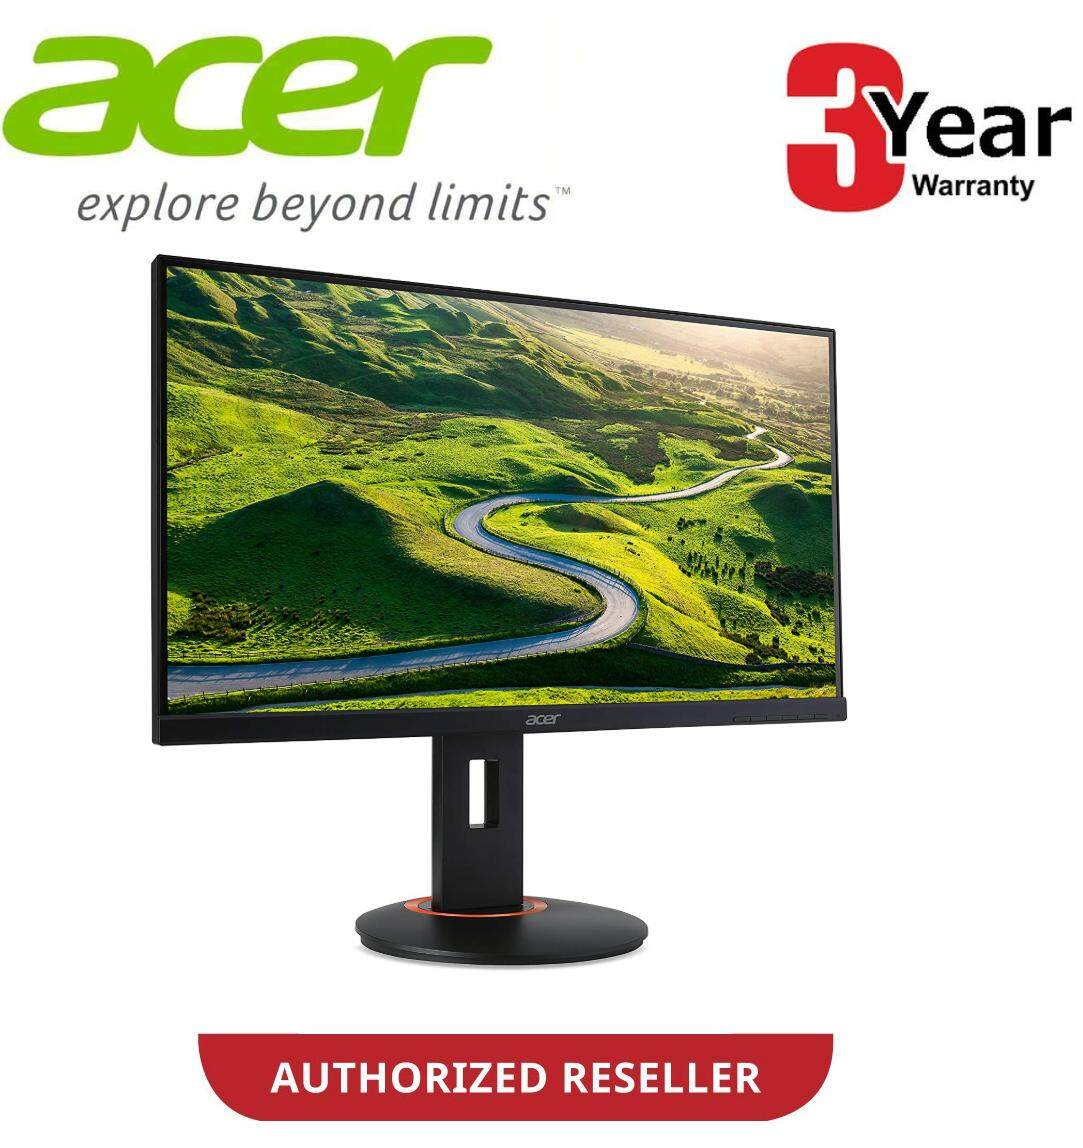 ACER XF270HA 27 TN 1MS 240HZ AMD FREESYNC GAMING MONITOR - XF270HA Malaysia